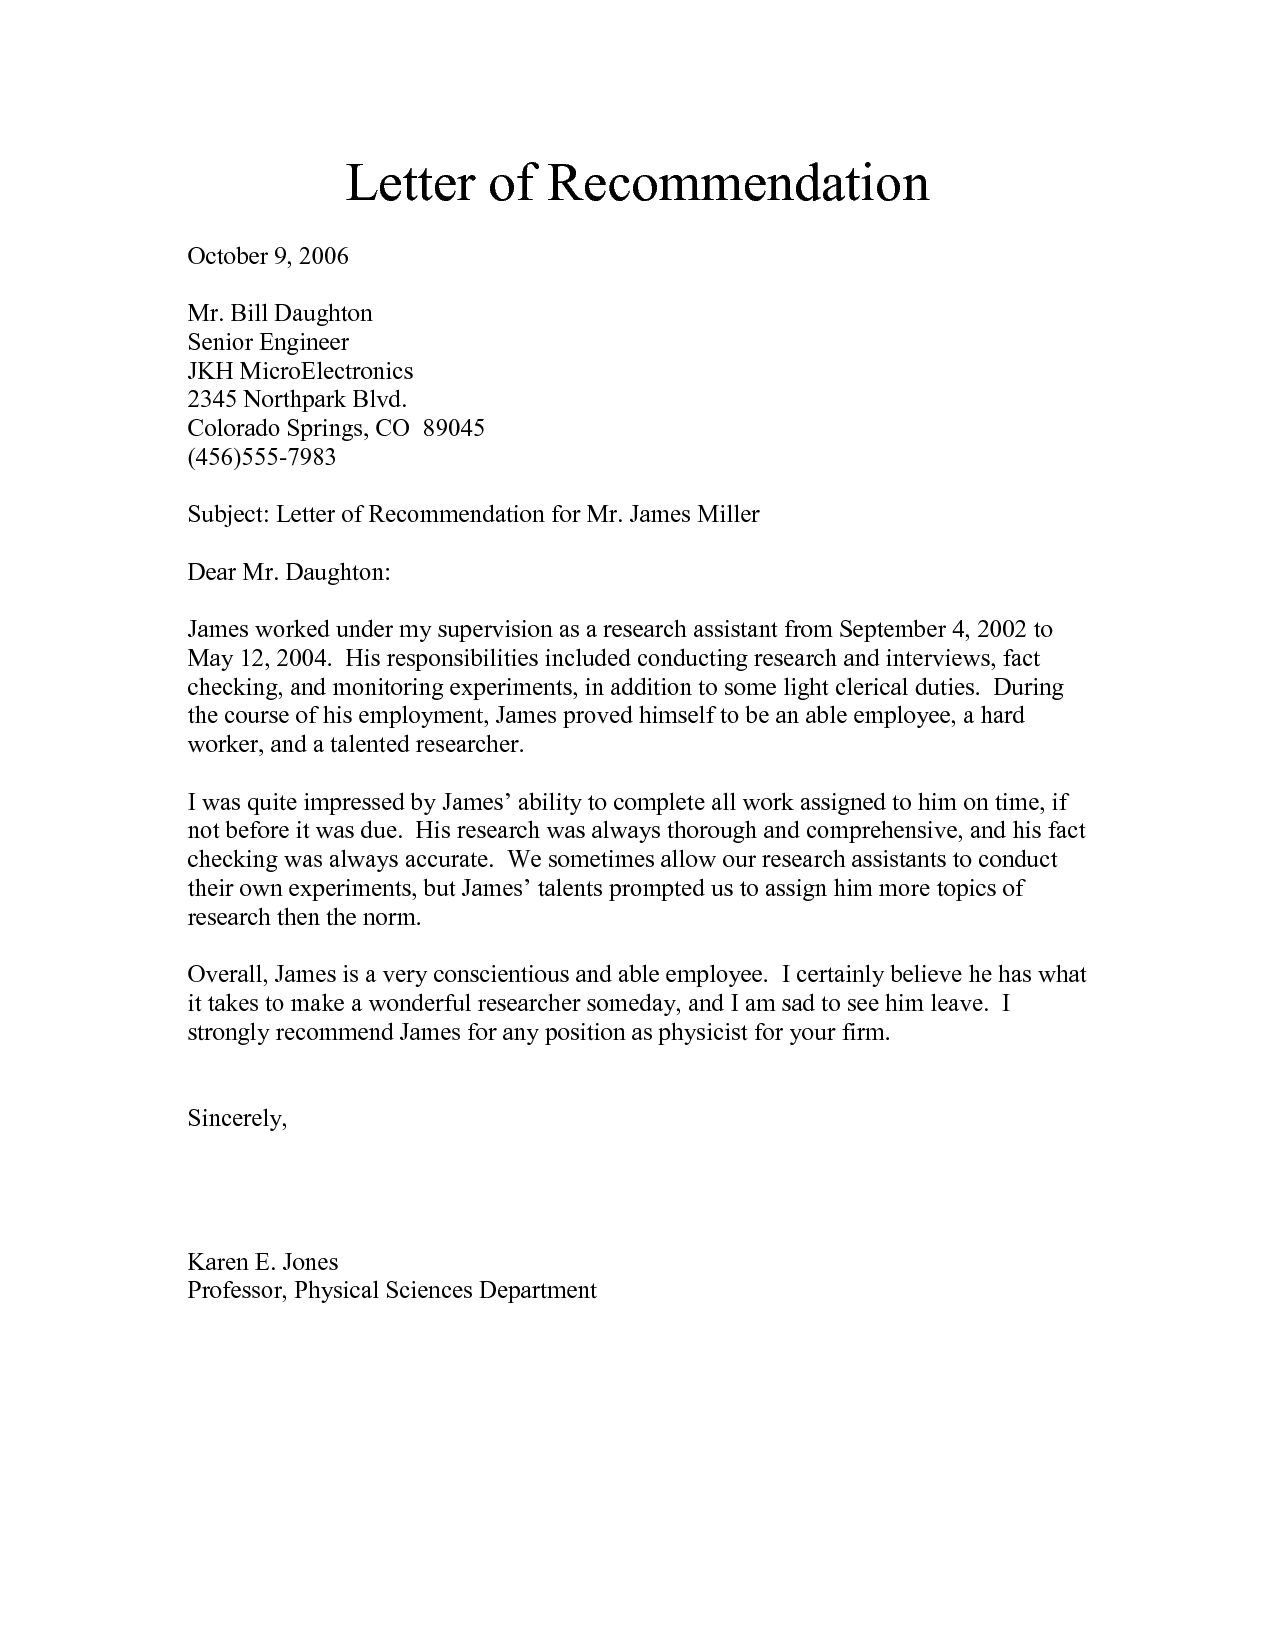 Army letter of recommendation exampleletter of recommendation formal army letter of recommendation exampleletter of recommendation formal letter sample altavistaventures Image collections